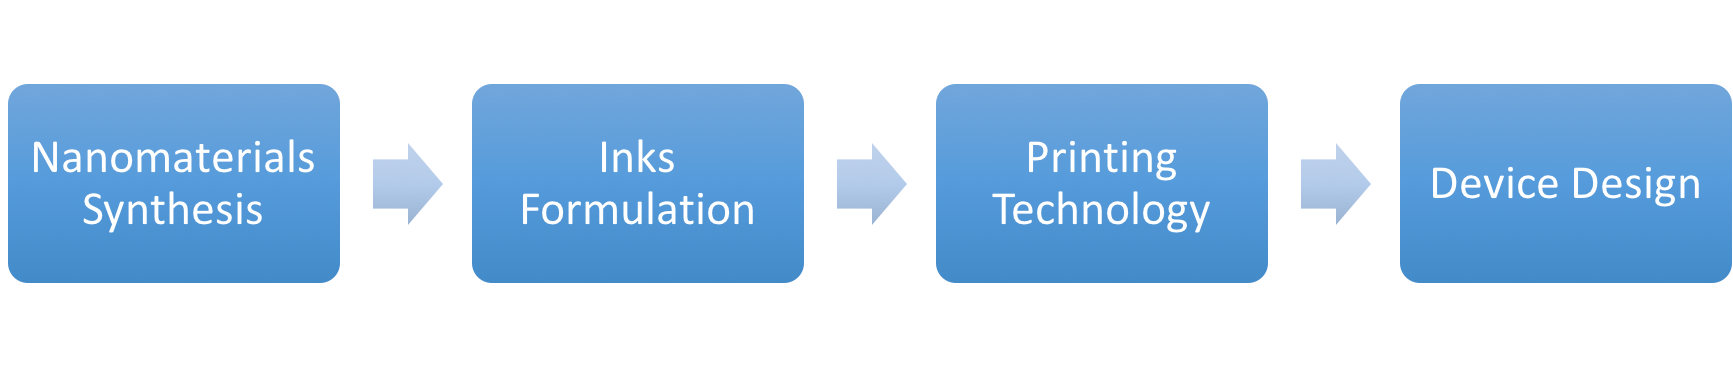 Vertical Integration Process: (1) semiconductor nanomaterial synthesis (2) Inks (3) Printing (4) Device Design